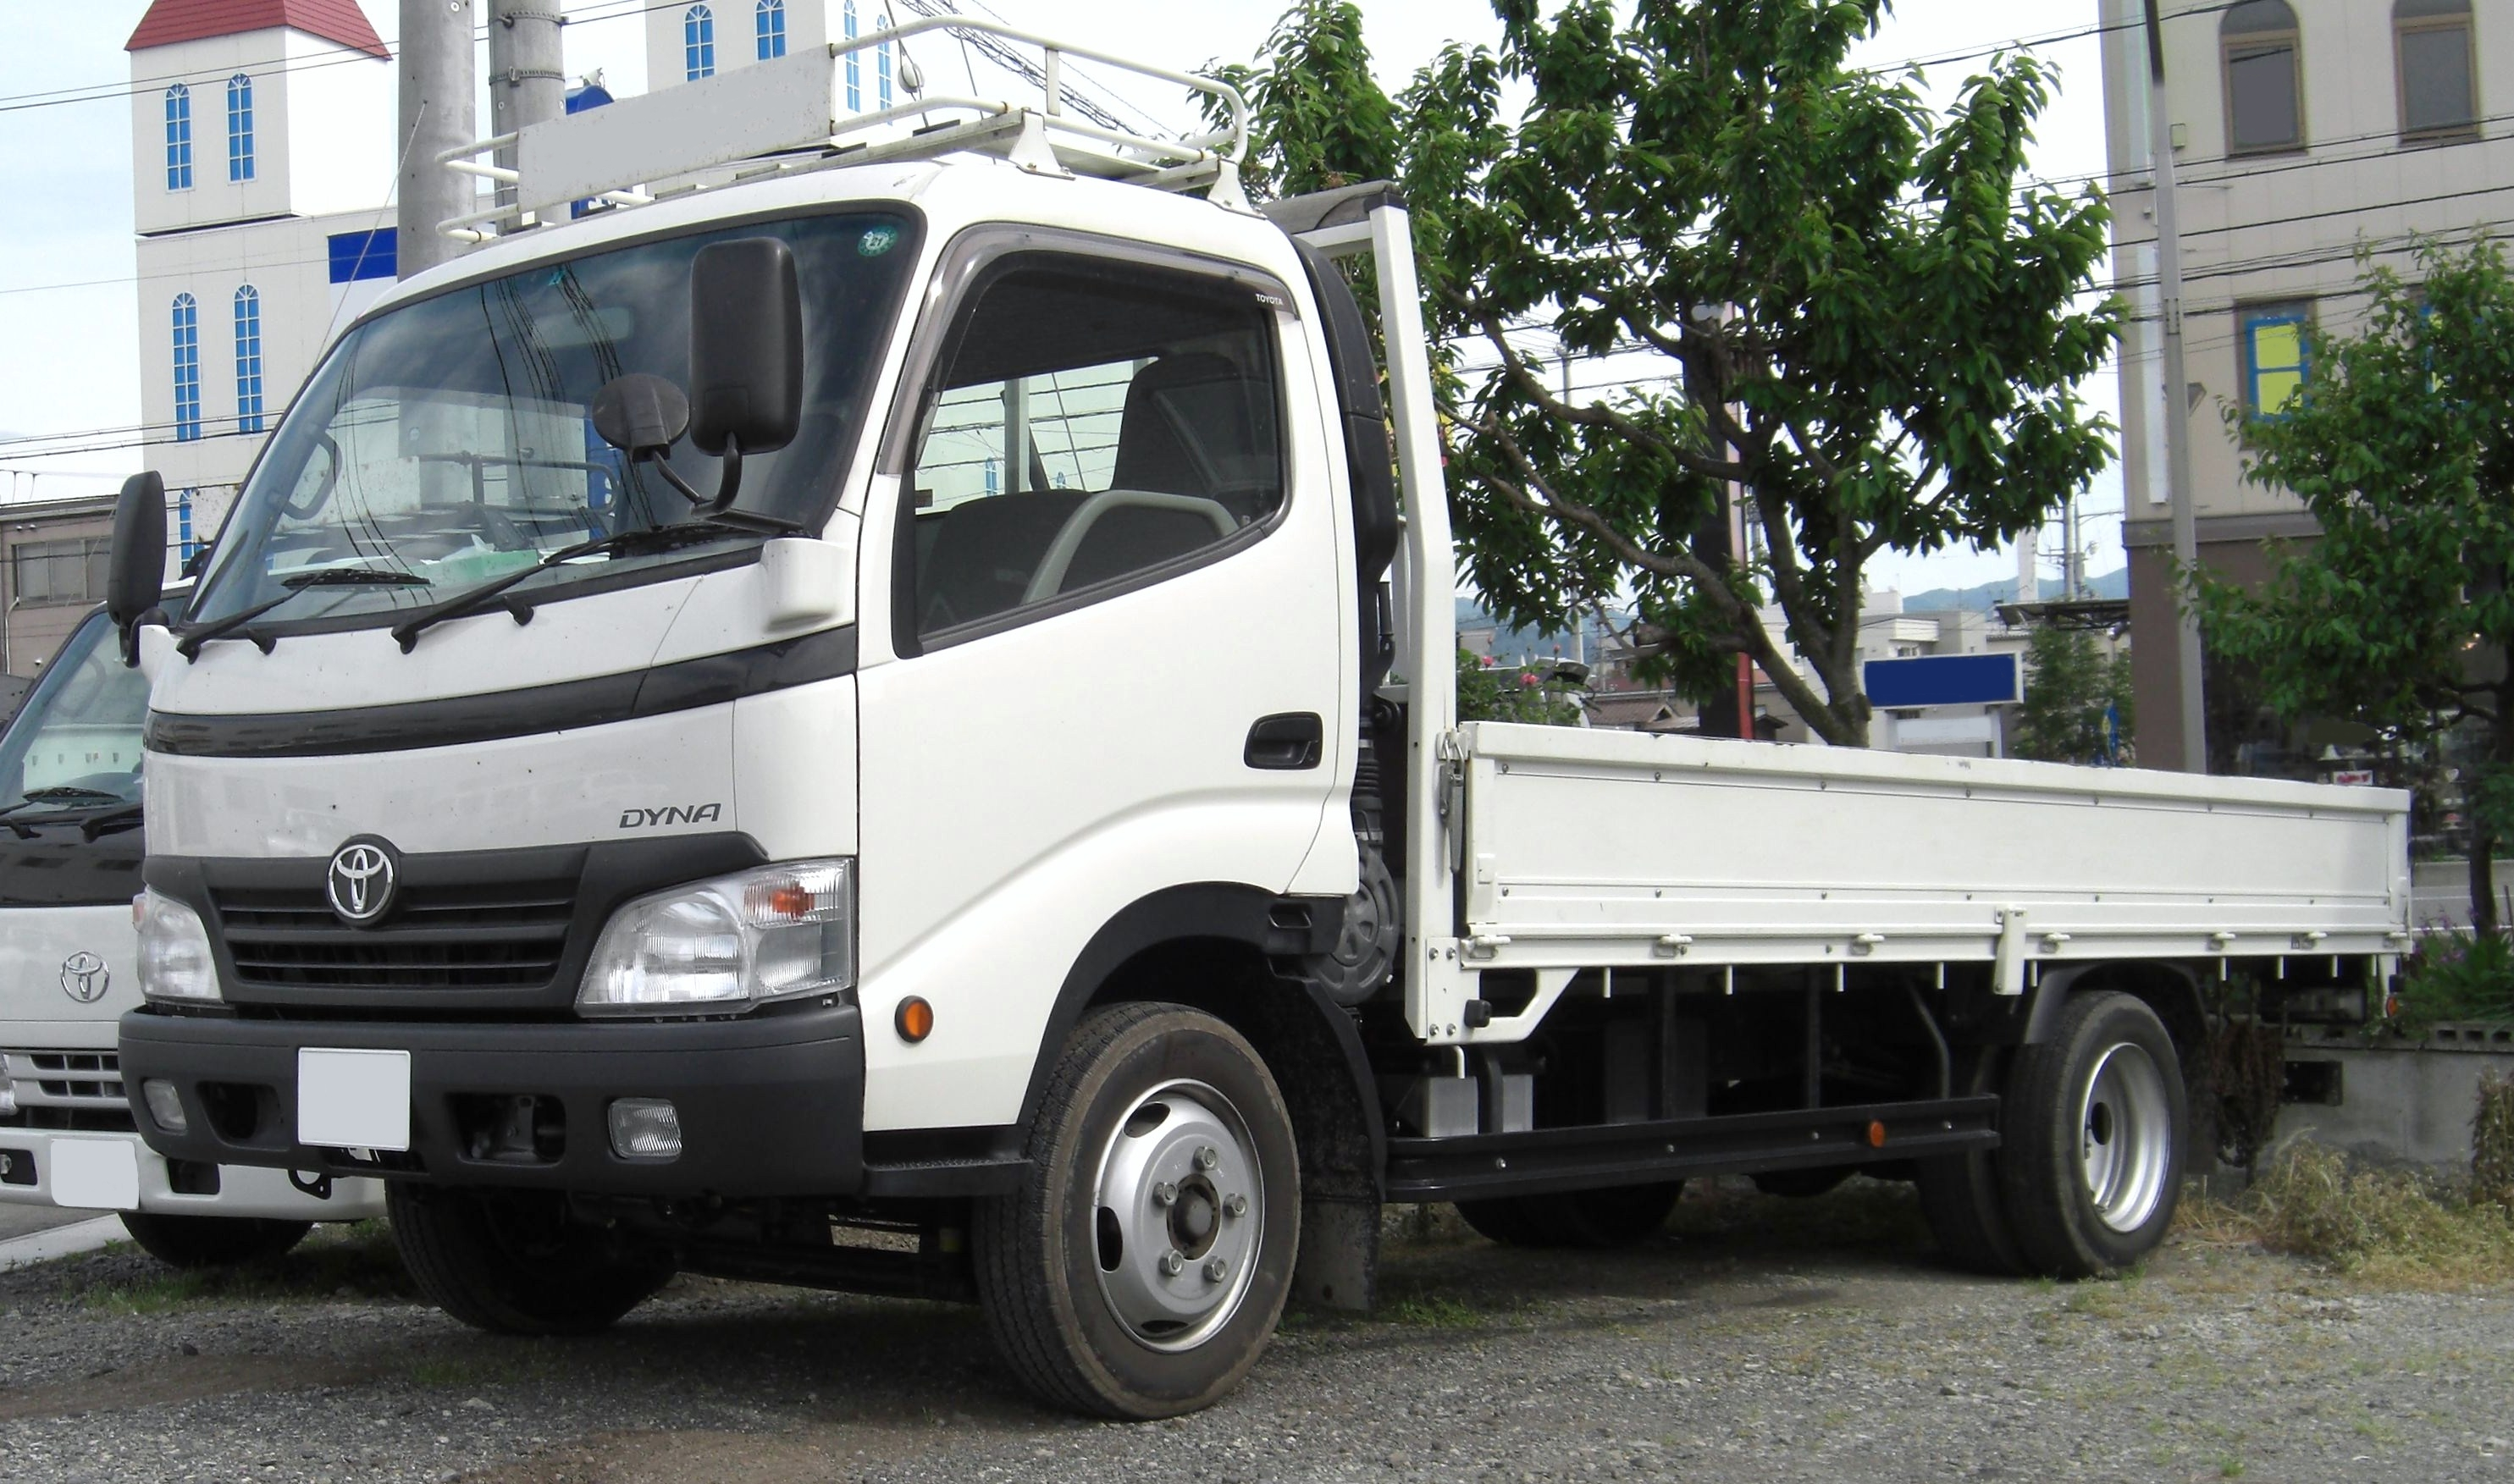 Description 2006 Toyota Dyna.jpg